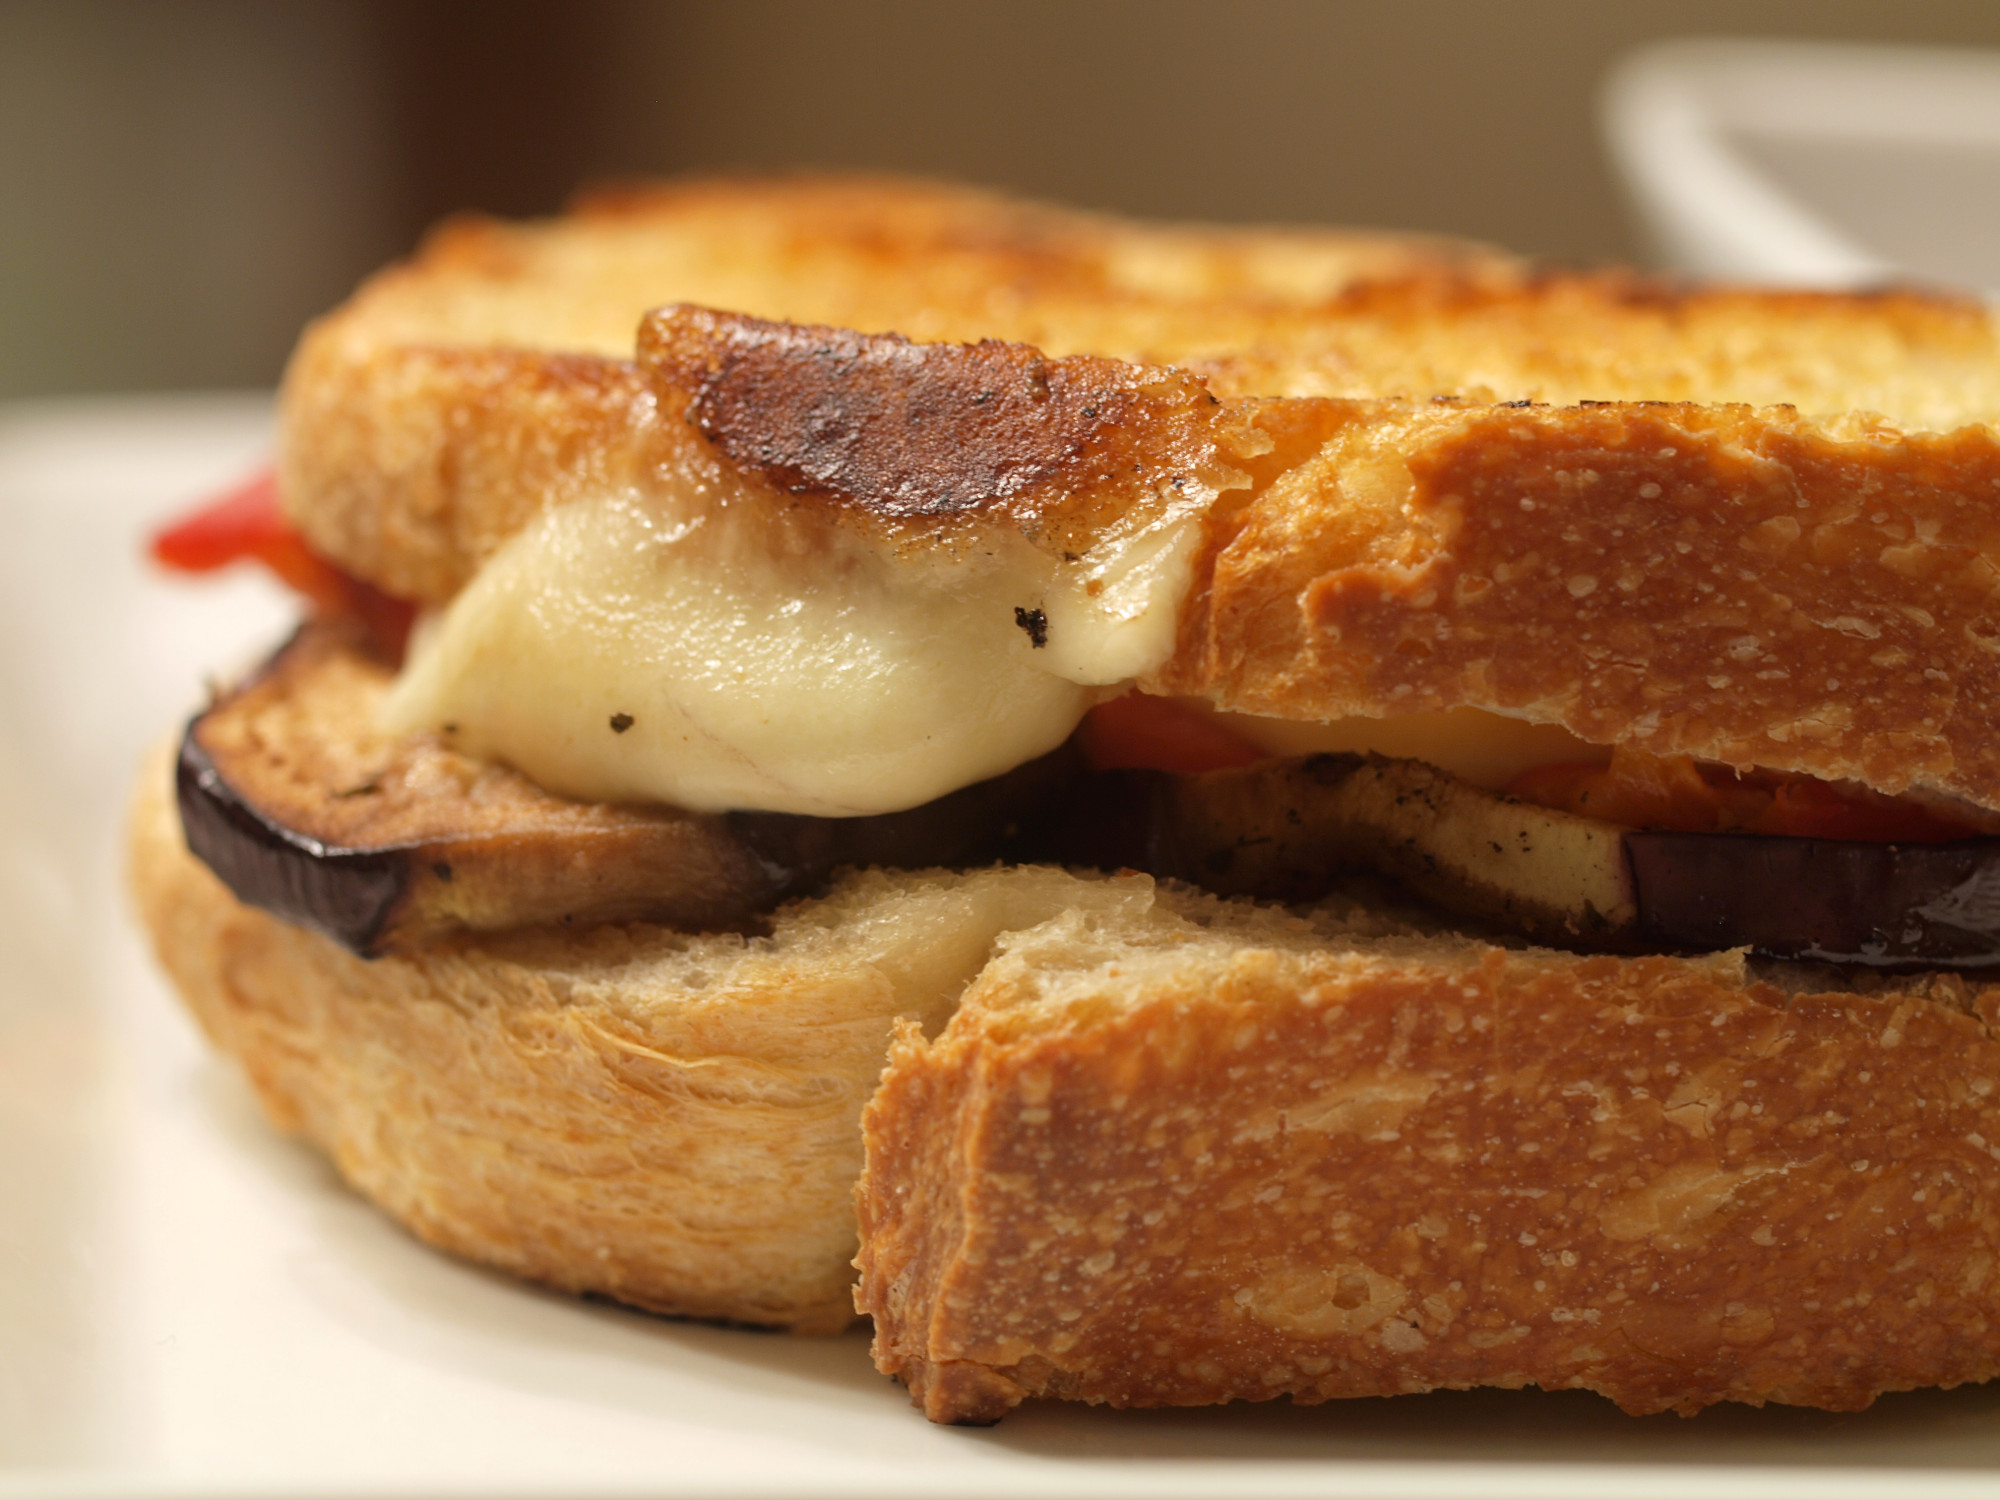 Eggplant & Roasted Red Pepper Grilled Cheese